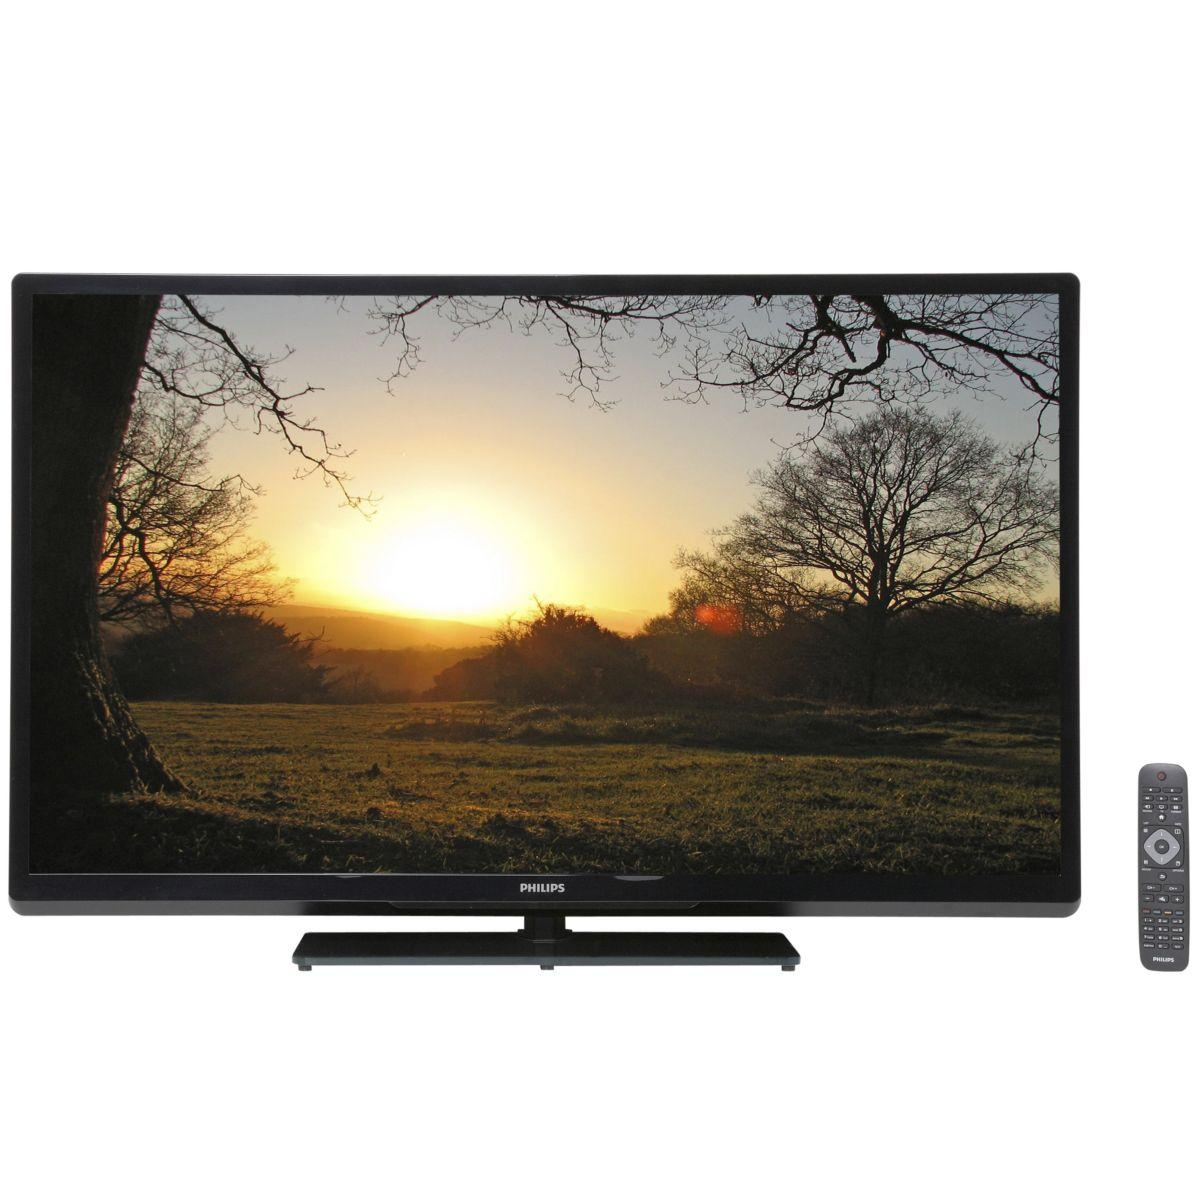 smart tv led full hd 107 cm philips 42pfl3507h reconditionn back market. Black Bedroom Furniture Sets. Home Design Ideas